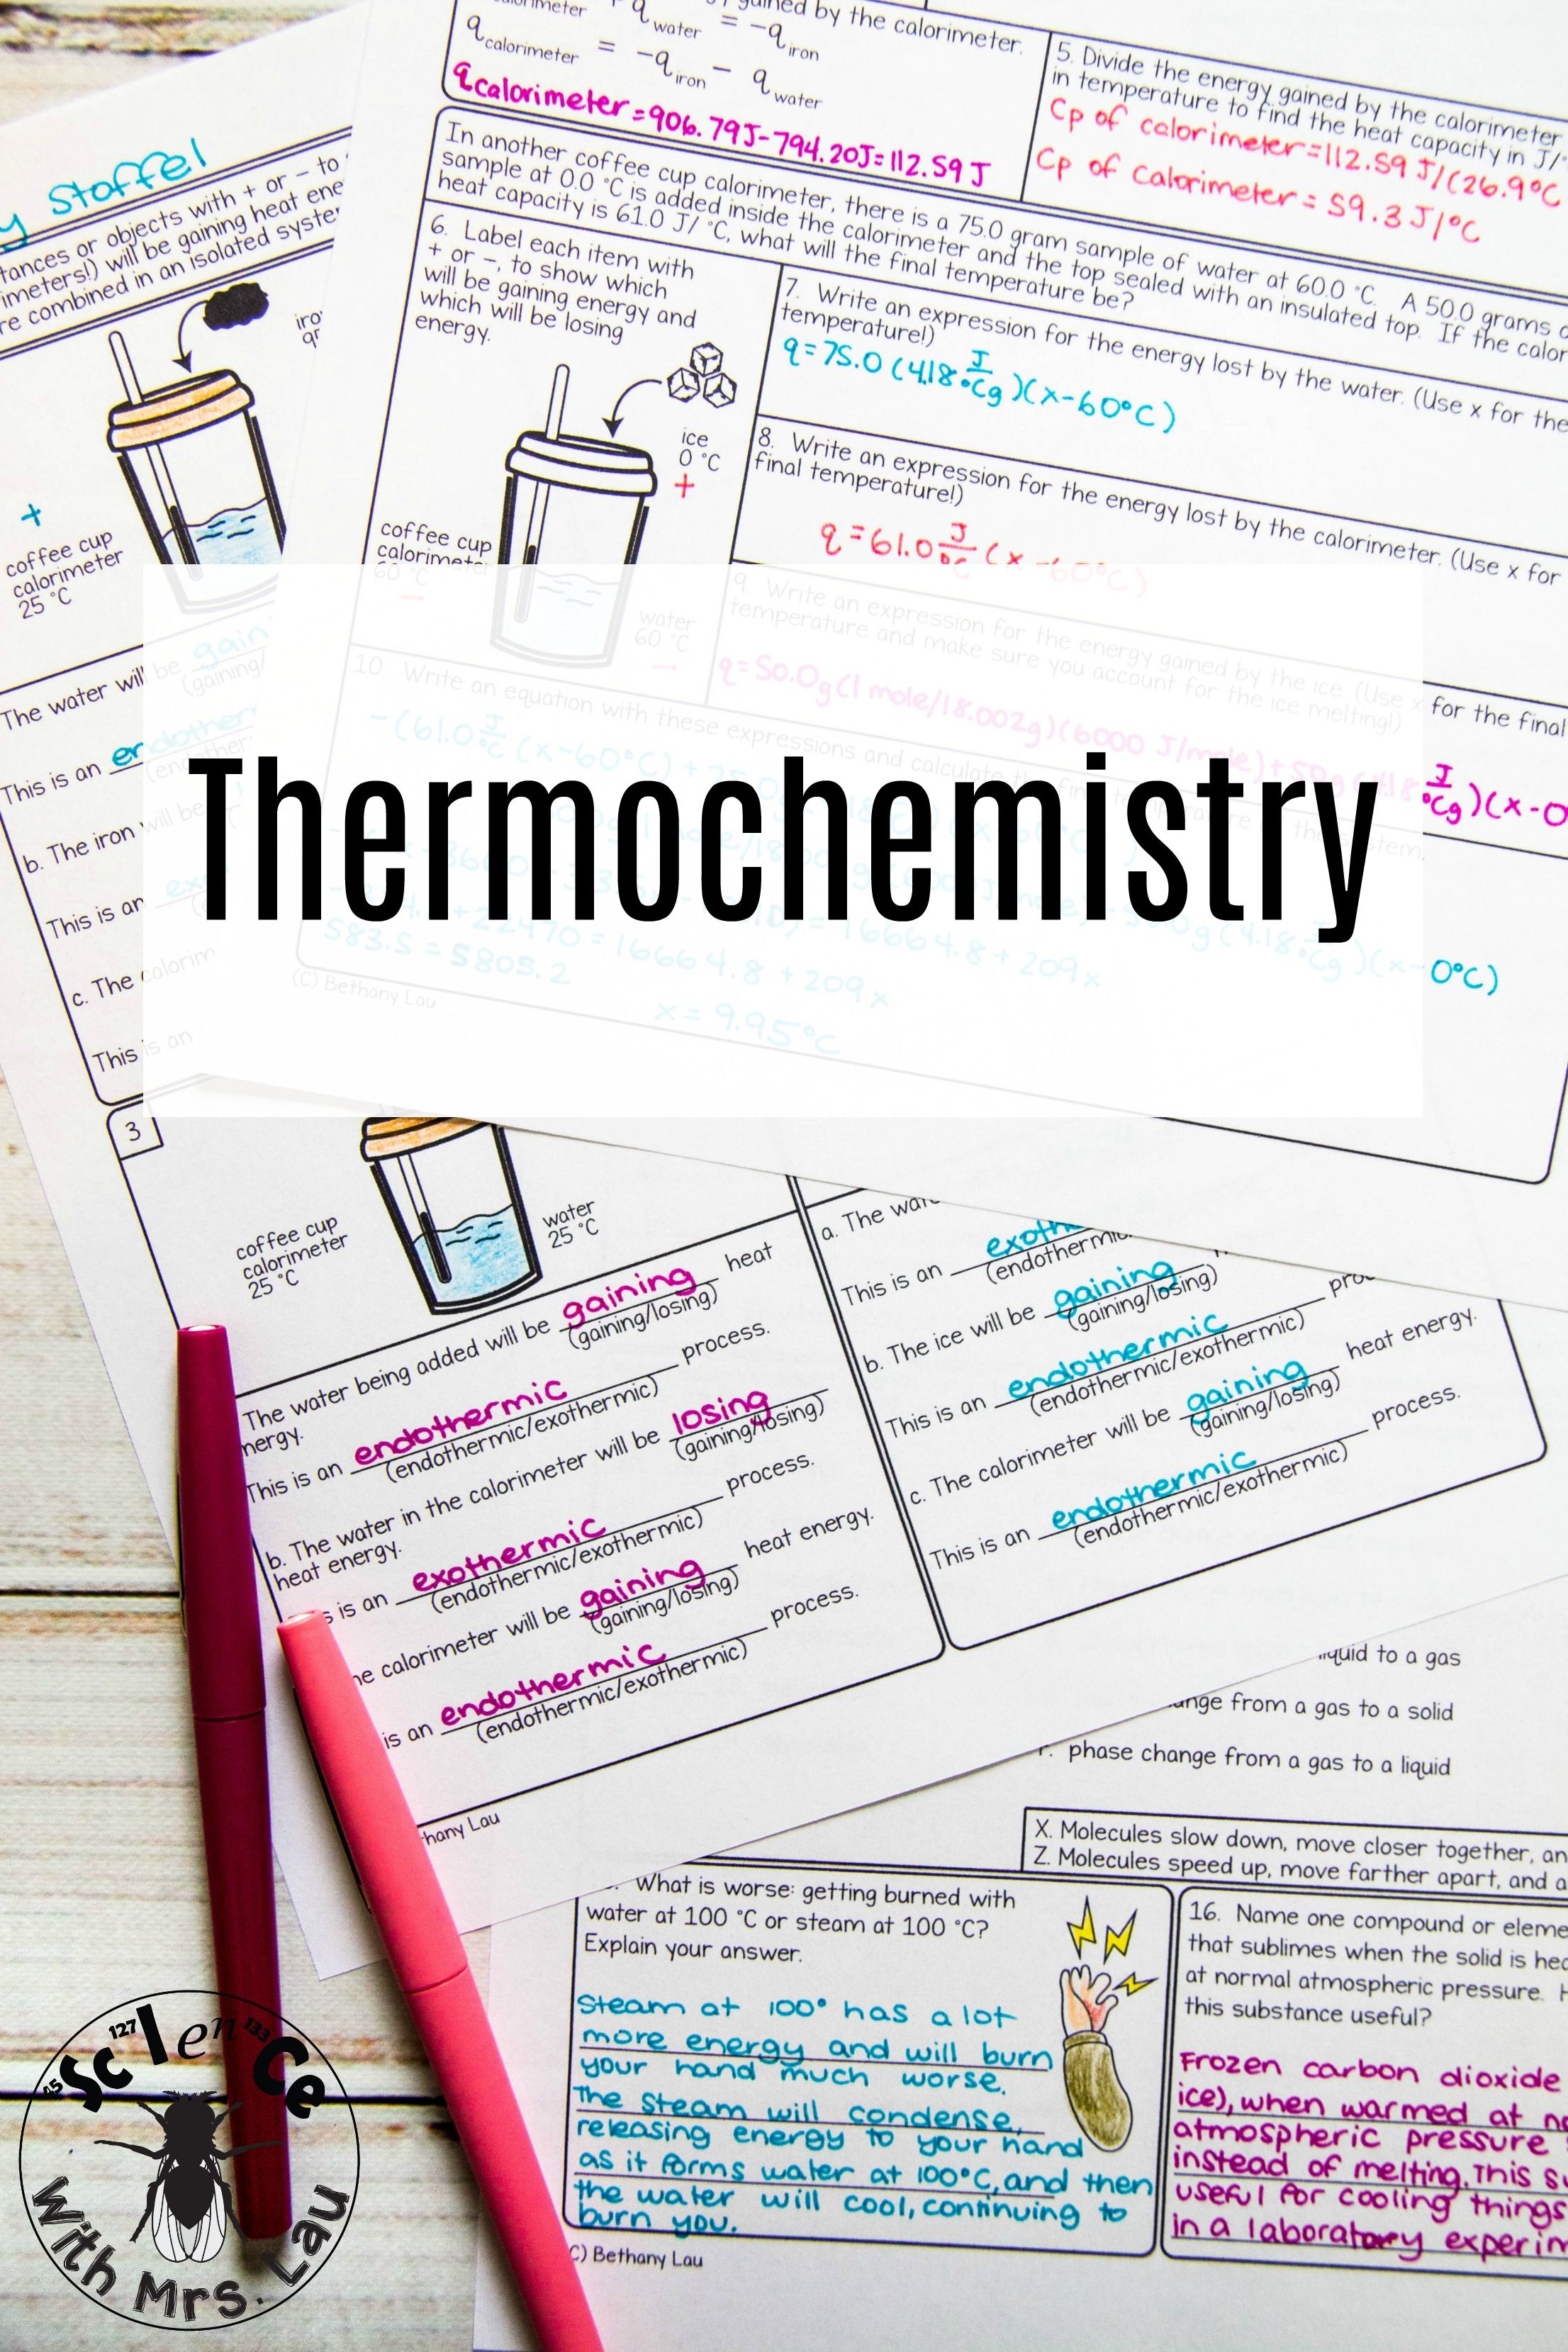 Thermochemistry And States Of Matter Chemistry Homework